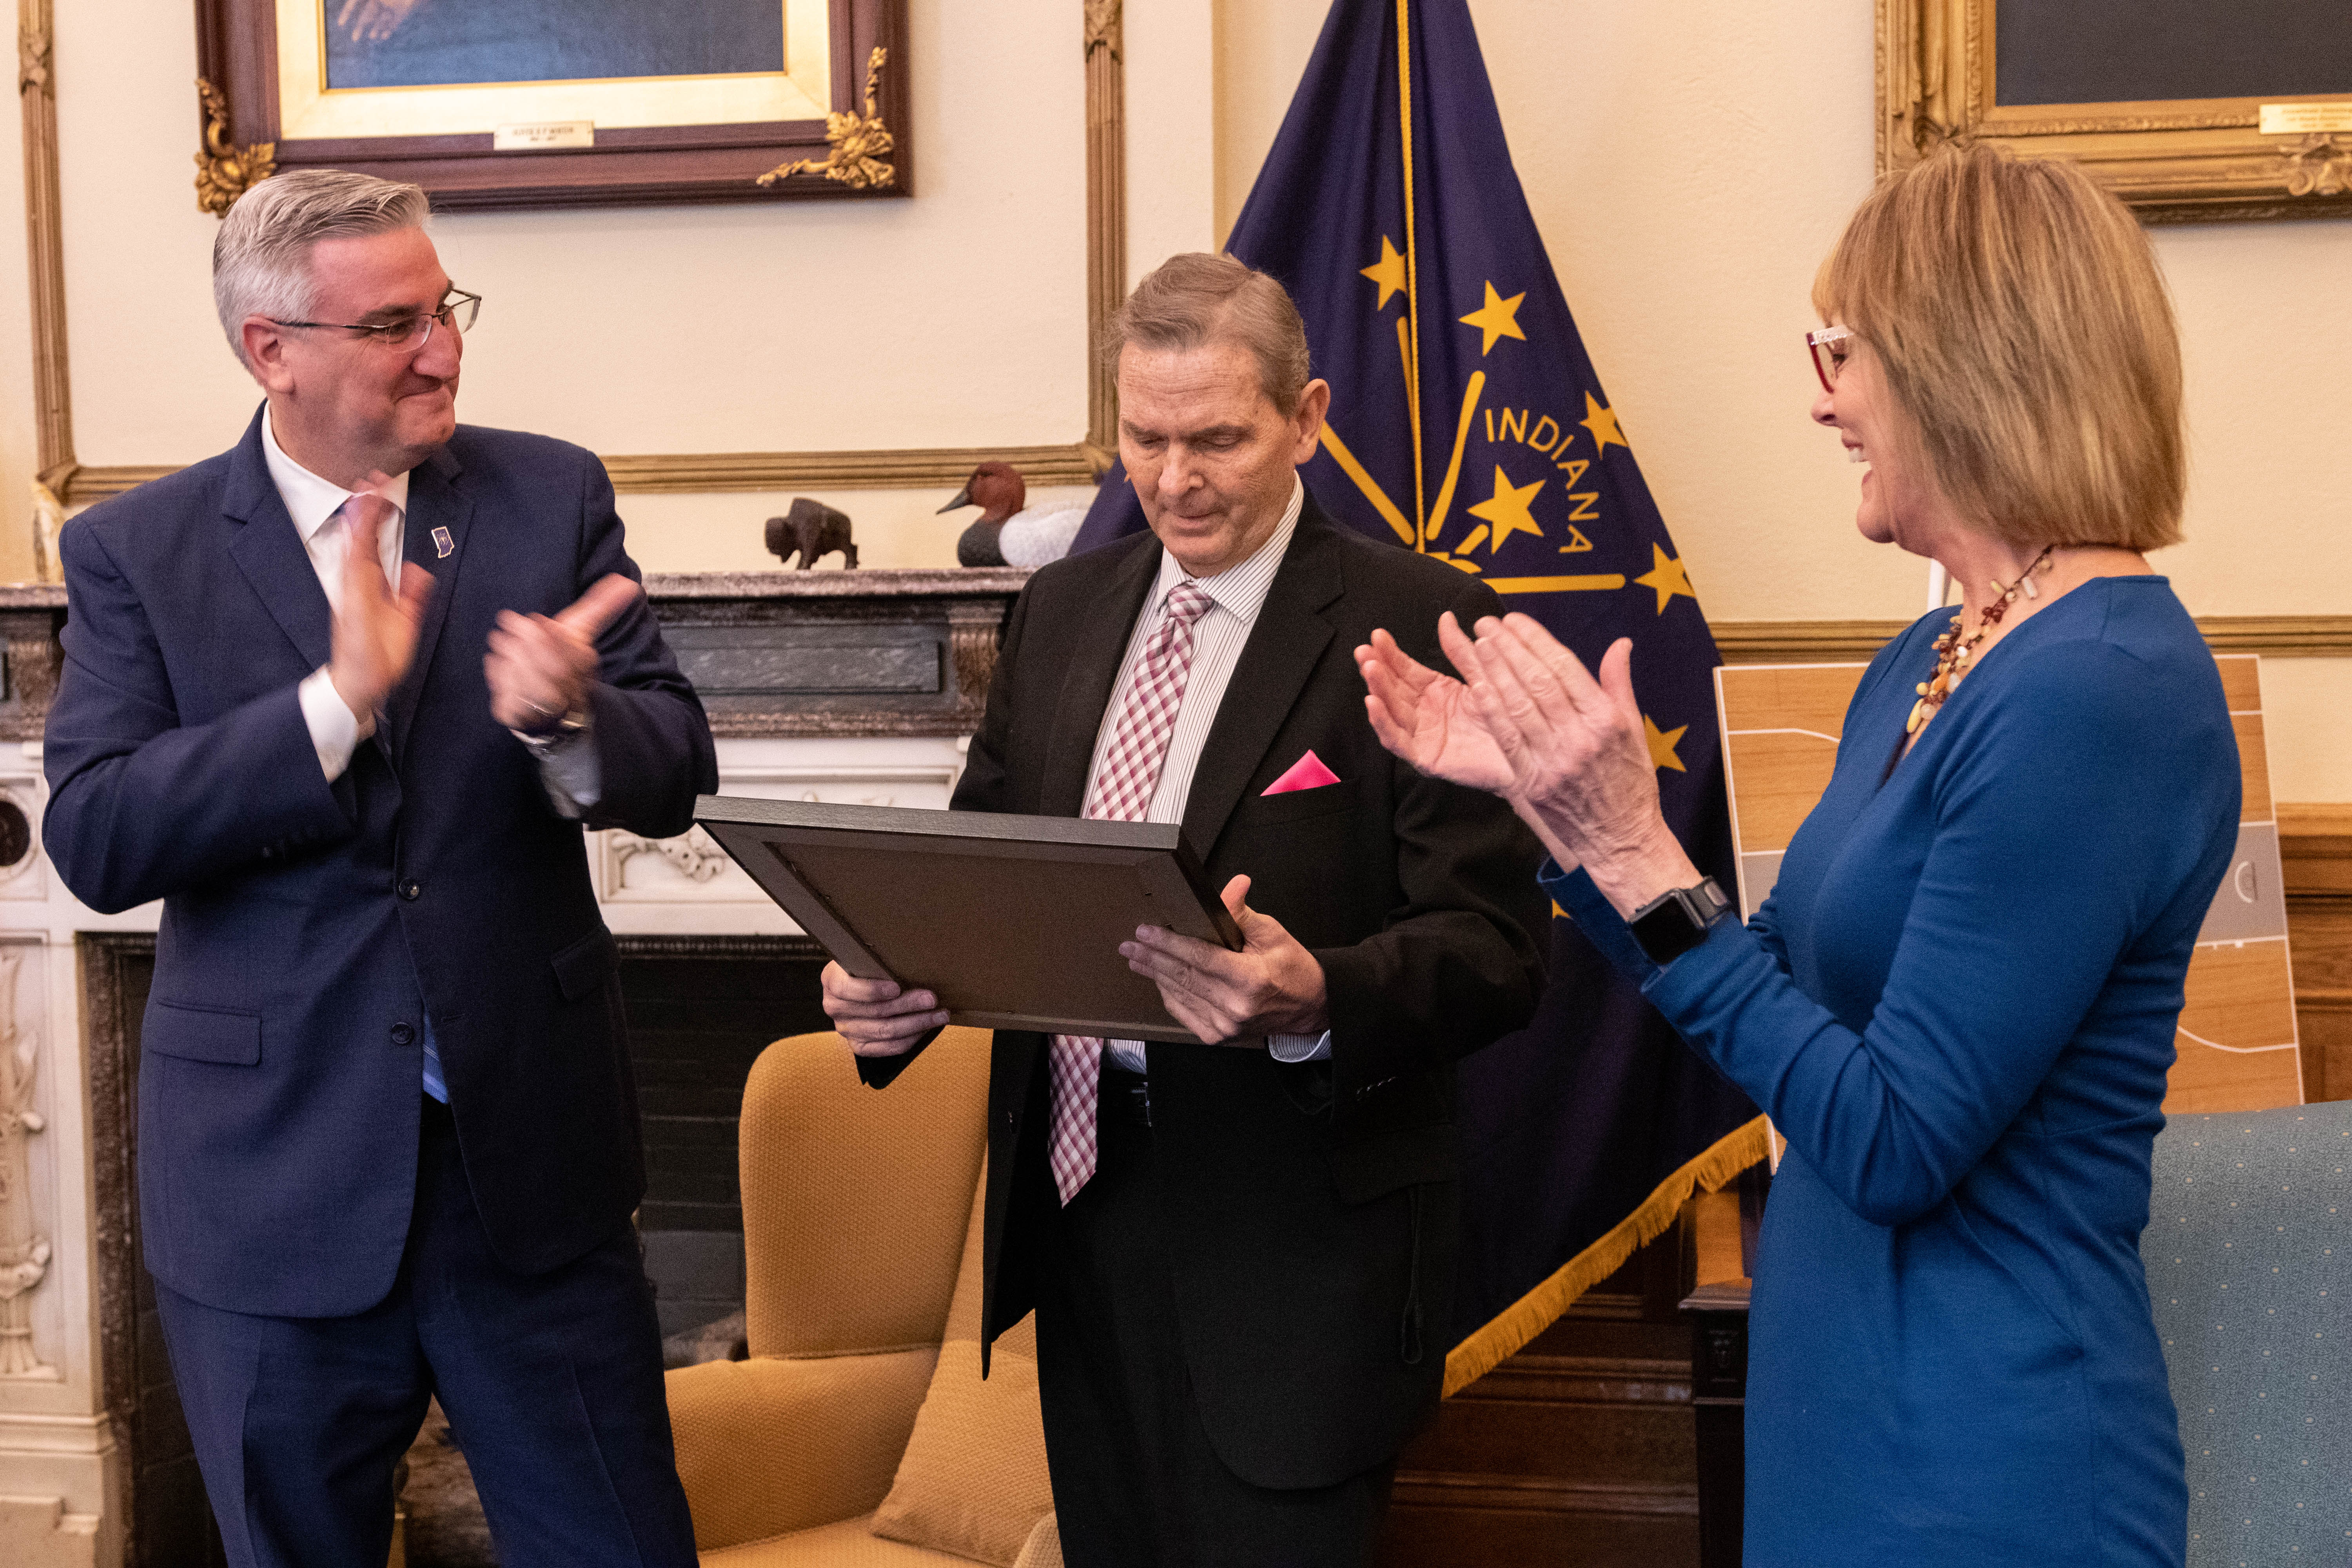 Indiana governor presents Vincennes University's Phil Rath prestigious Sagamore of the Wabash honor